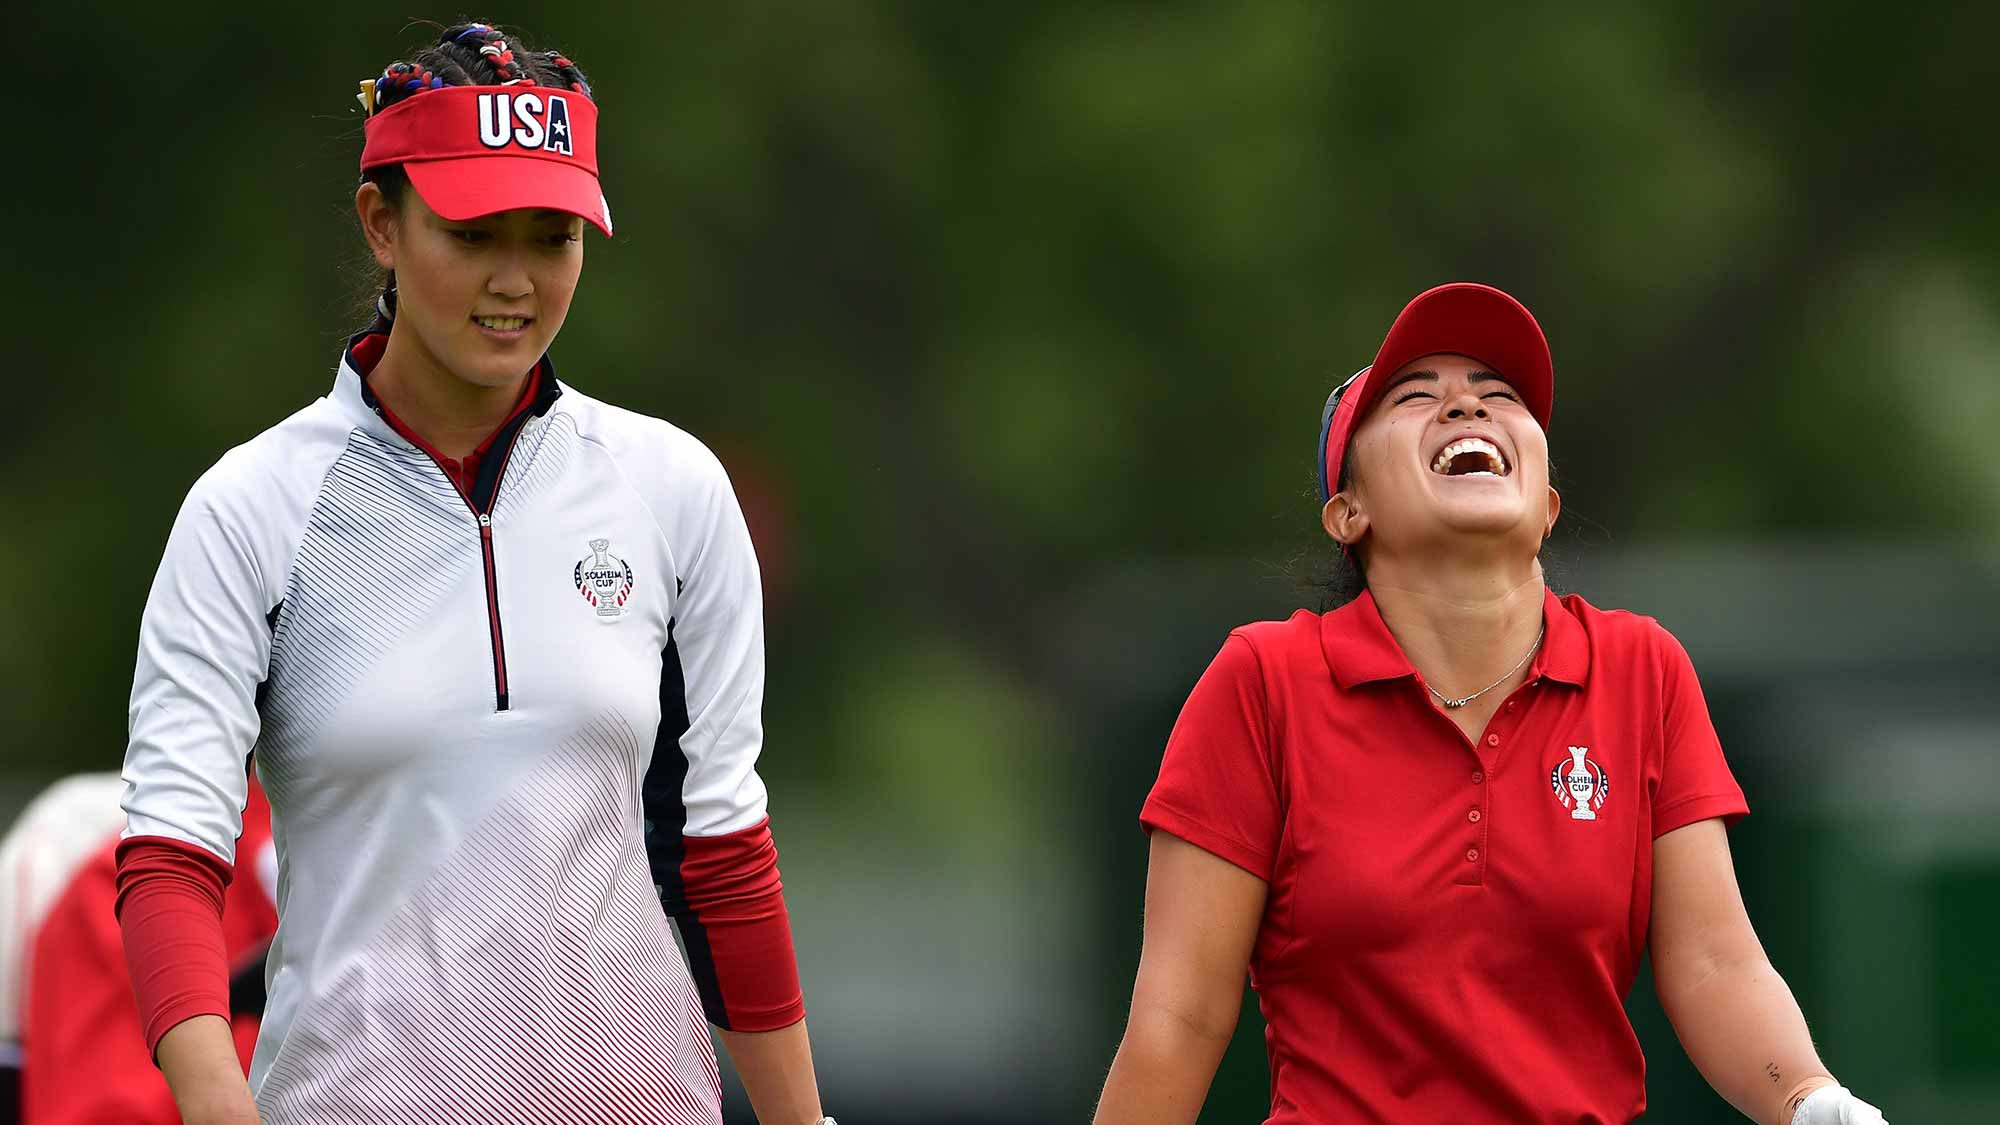 Suzann Pettersen out of Solheim Cup with back injury